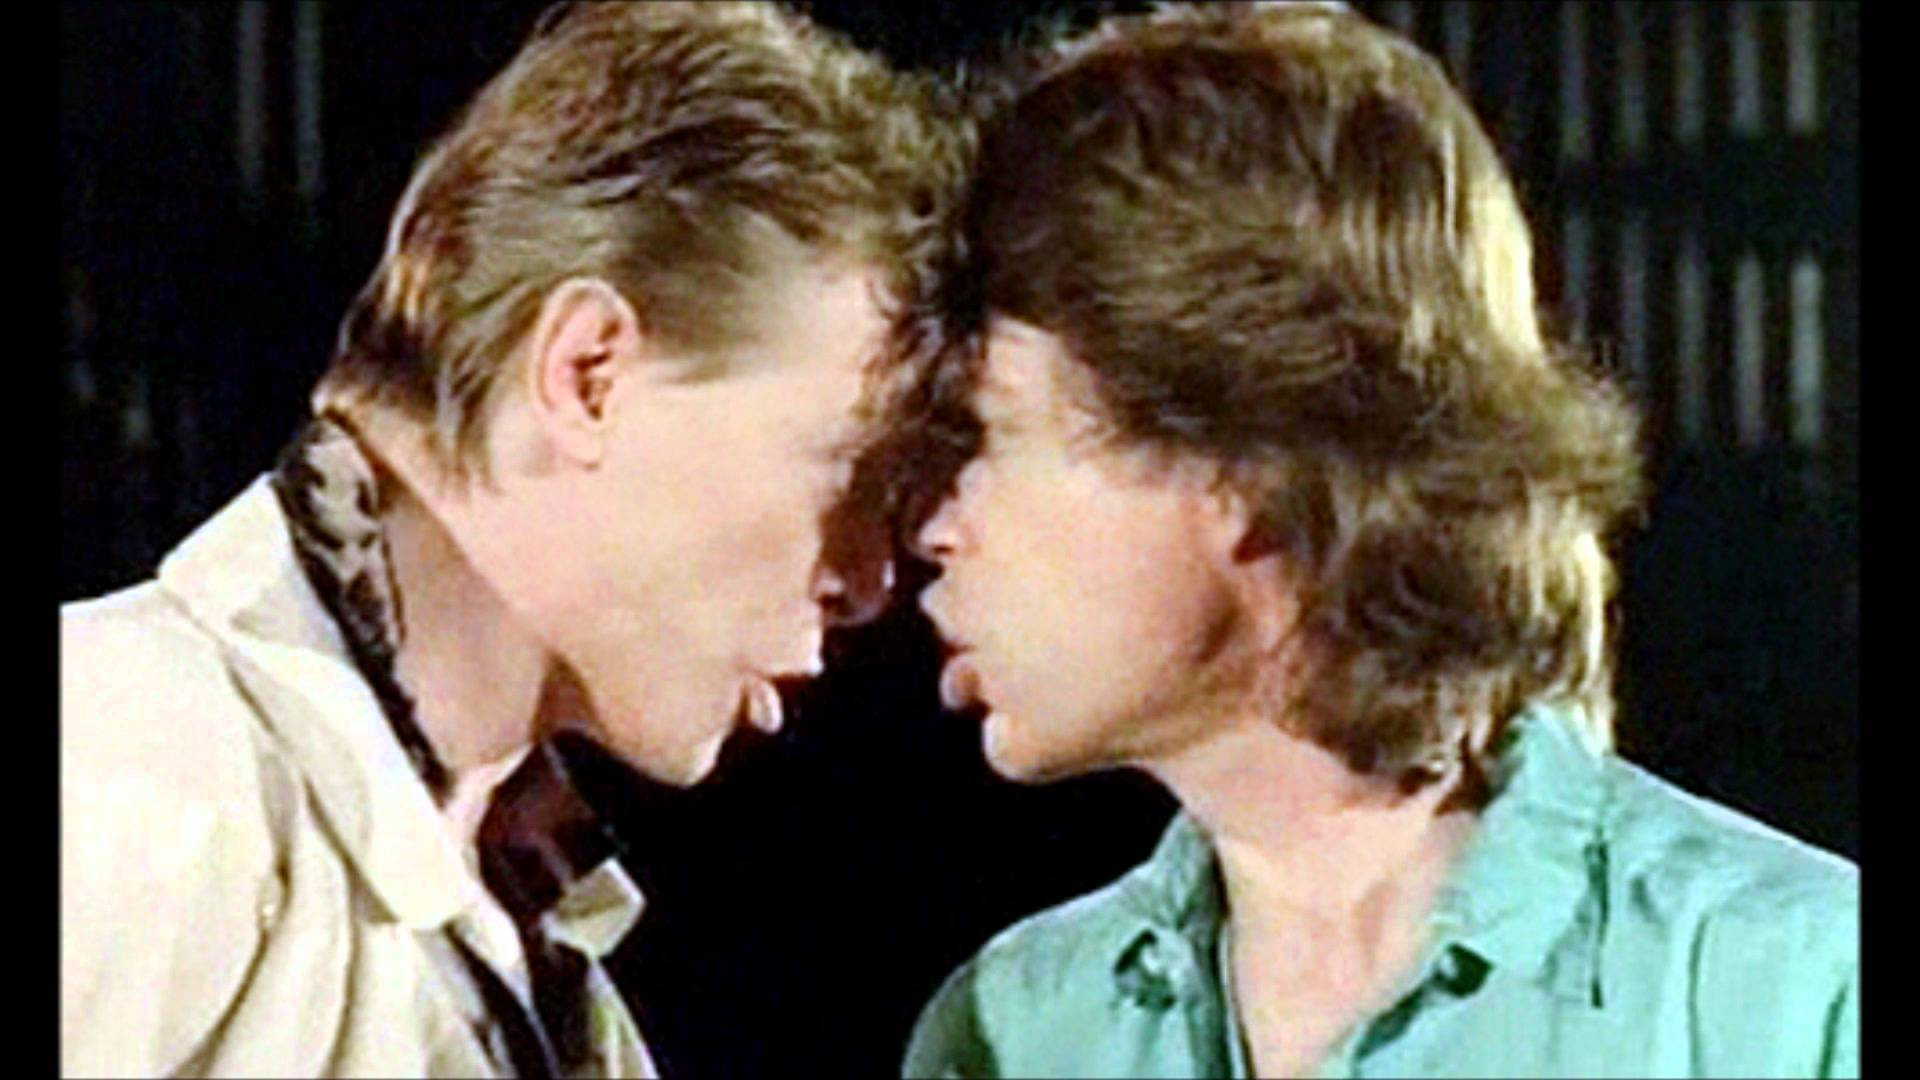 David Bowie & Mick Jagger Dancing In The Street04.jpg